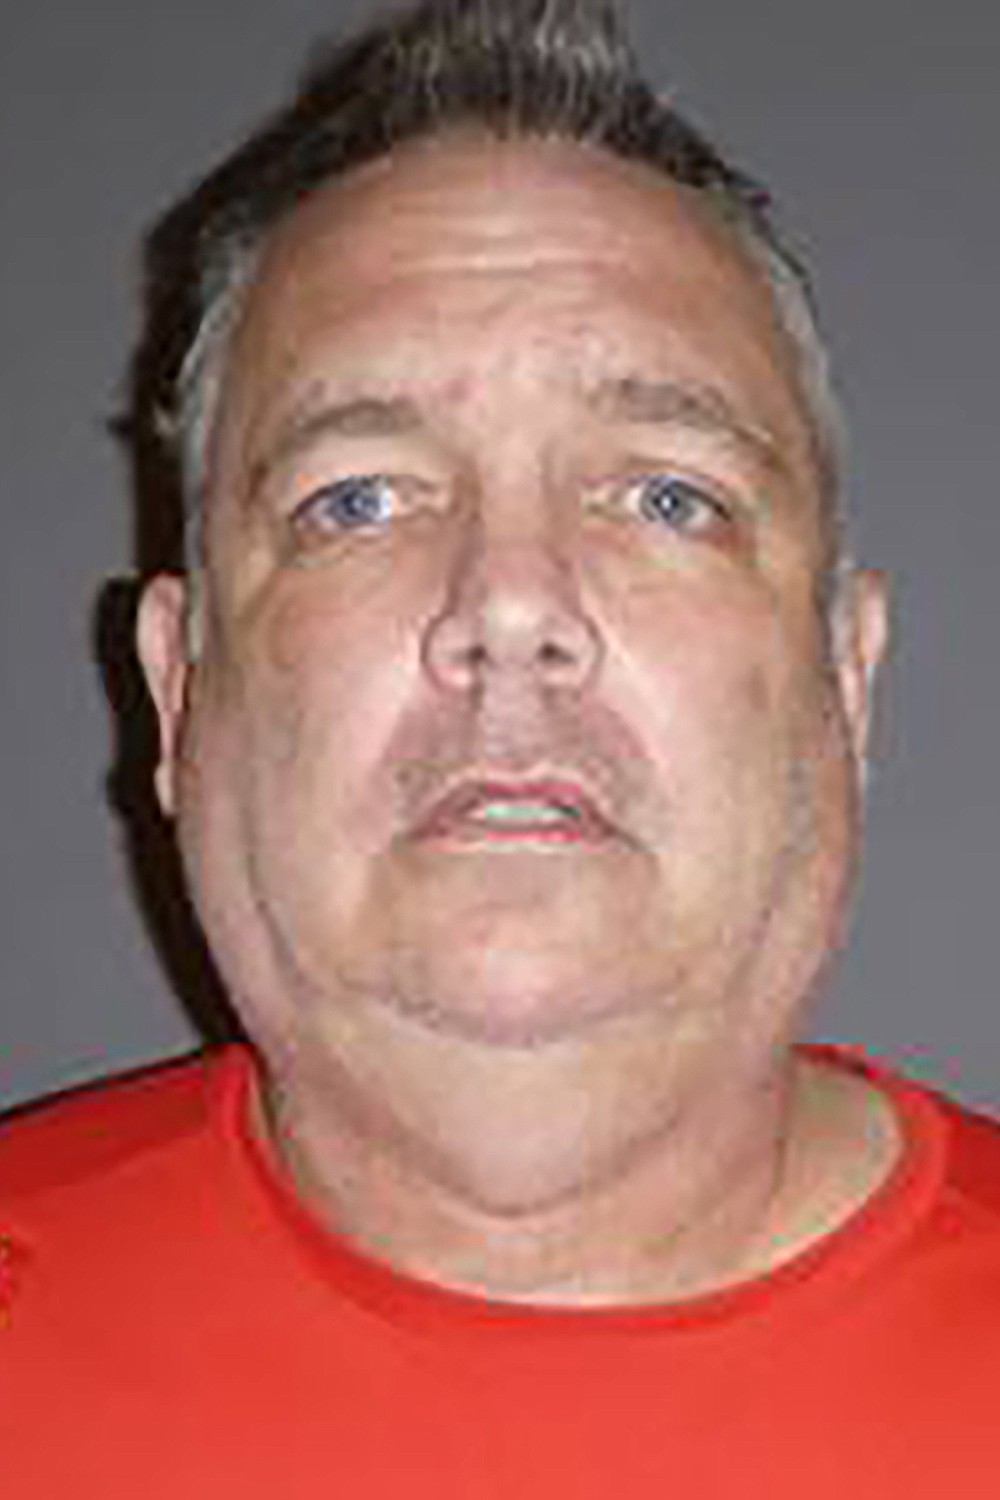 This undated handout booking photo provided by the New Hampshire Attorney General's office shows Stephen Murphy, one of six men arrested Wednesday, April 7, 2021, in connection with sexual abuse allegations at New Hampshire's state-run youth detention center, the attorney general's office said. (New Hampshire Attorney General's Office via AP)